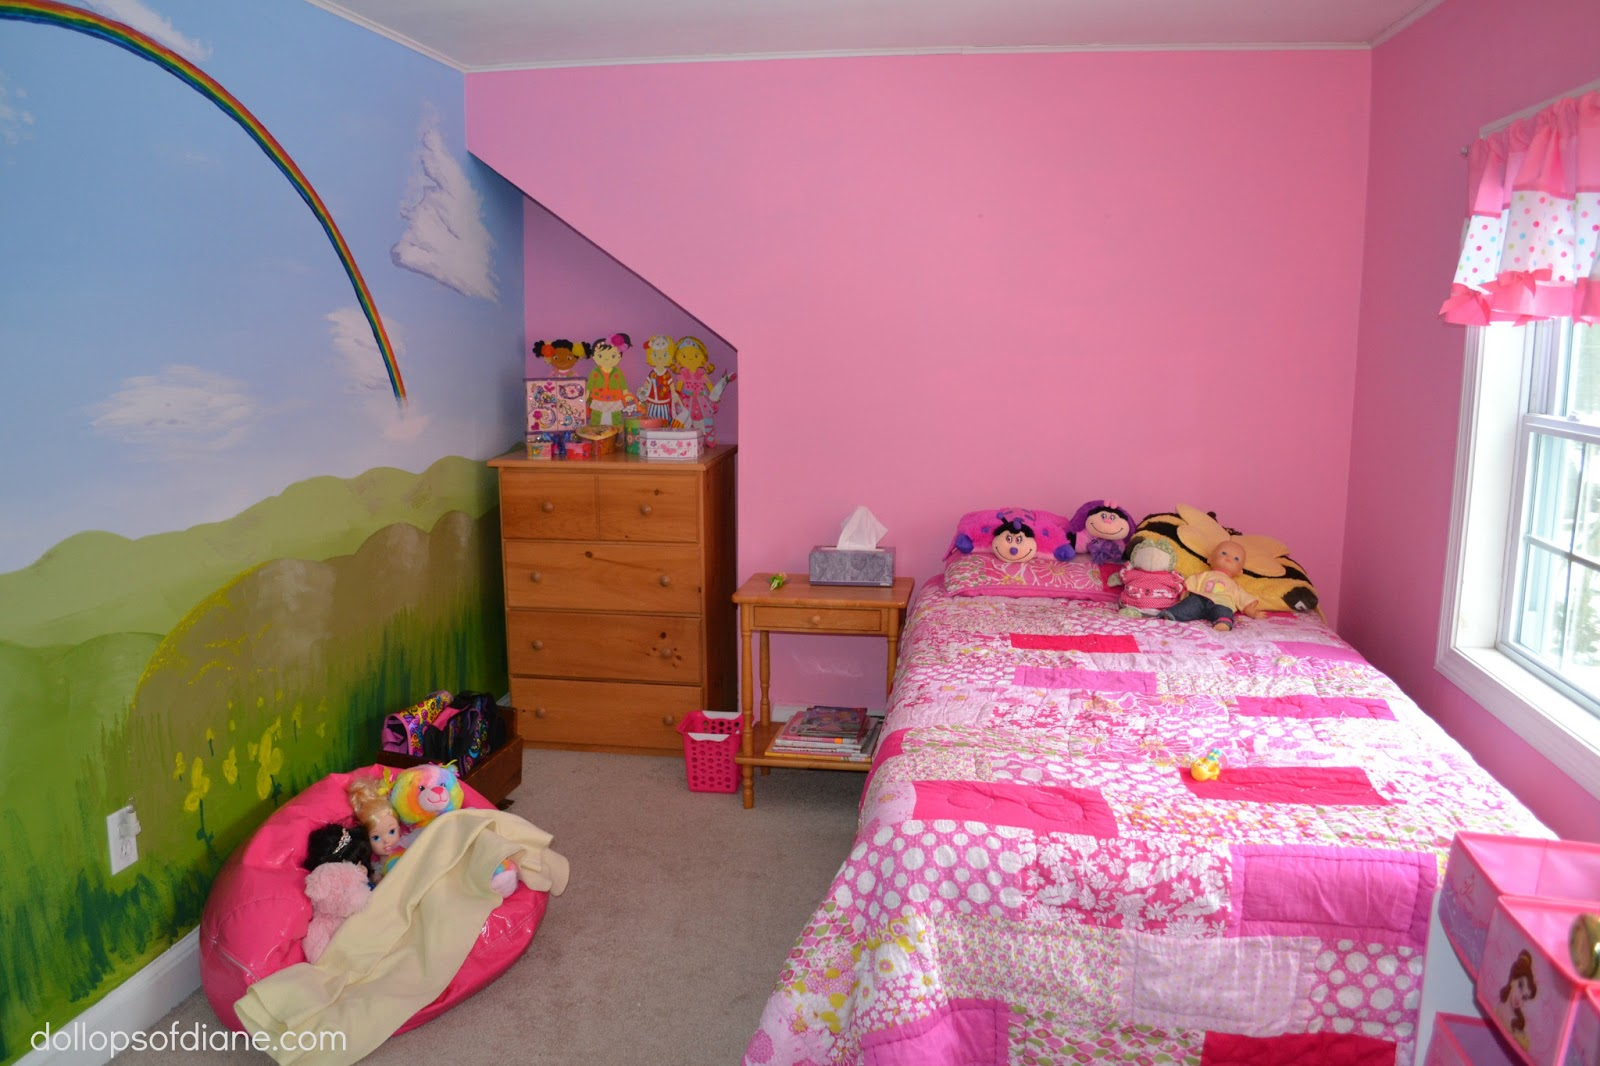 Dollops of diane the perfect room for a five year old girl for 4 yr old bedroom ideas